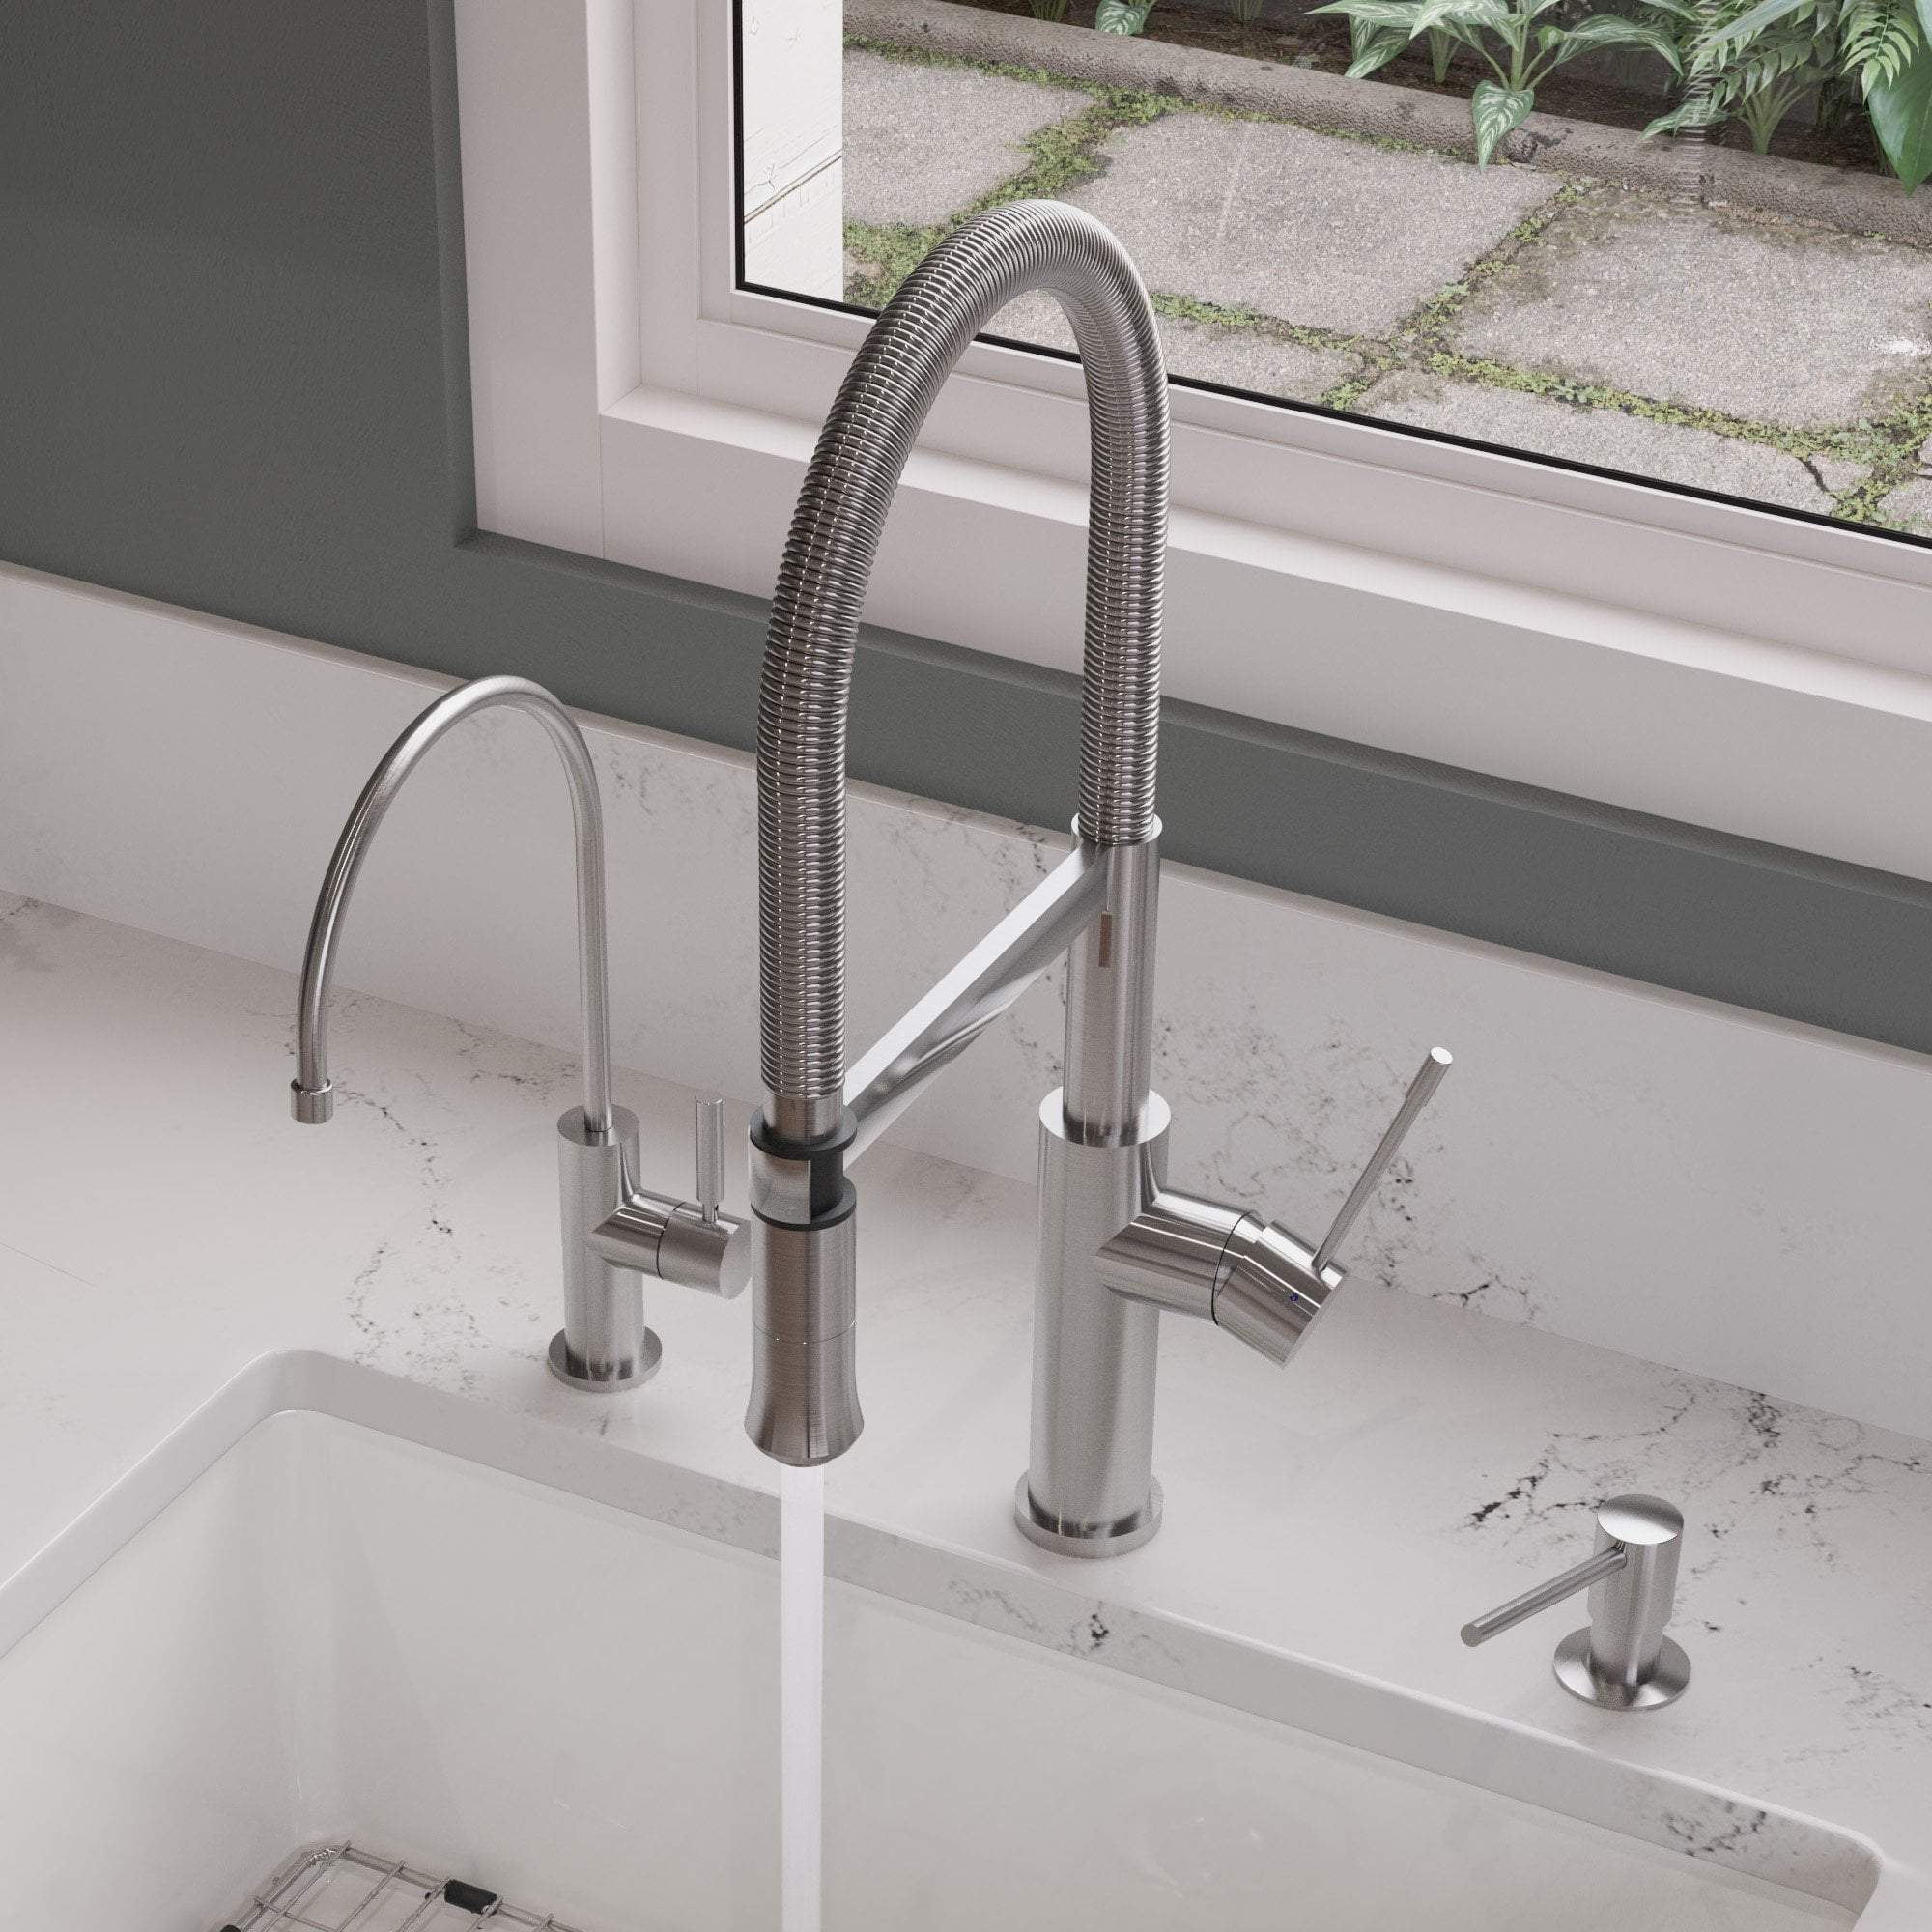 ALFI brand AB2015 Brushed Gooseneck Single Hole Faucet